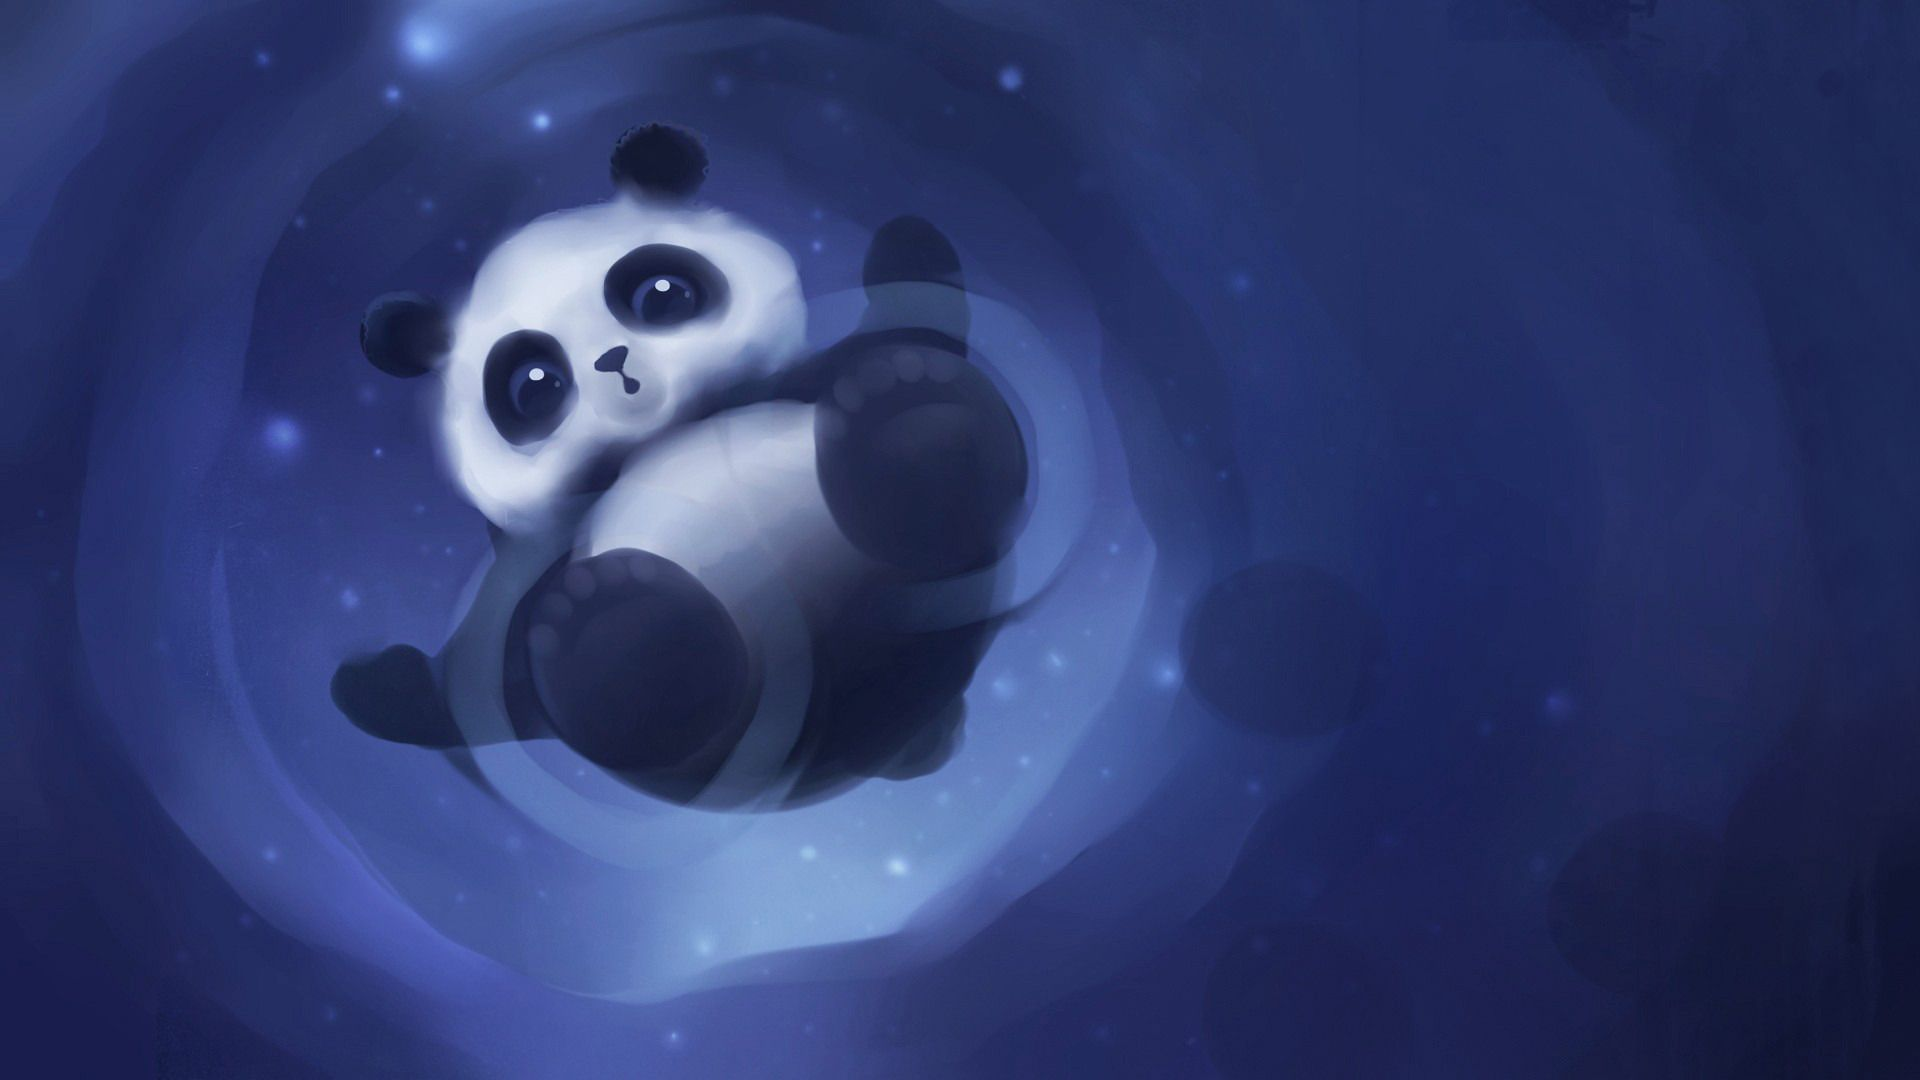 Anime Panda Wallpaper - WallpaperSafari